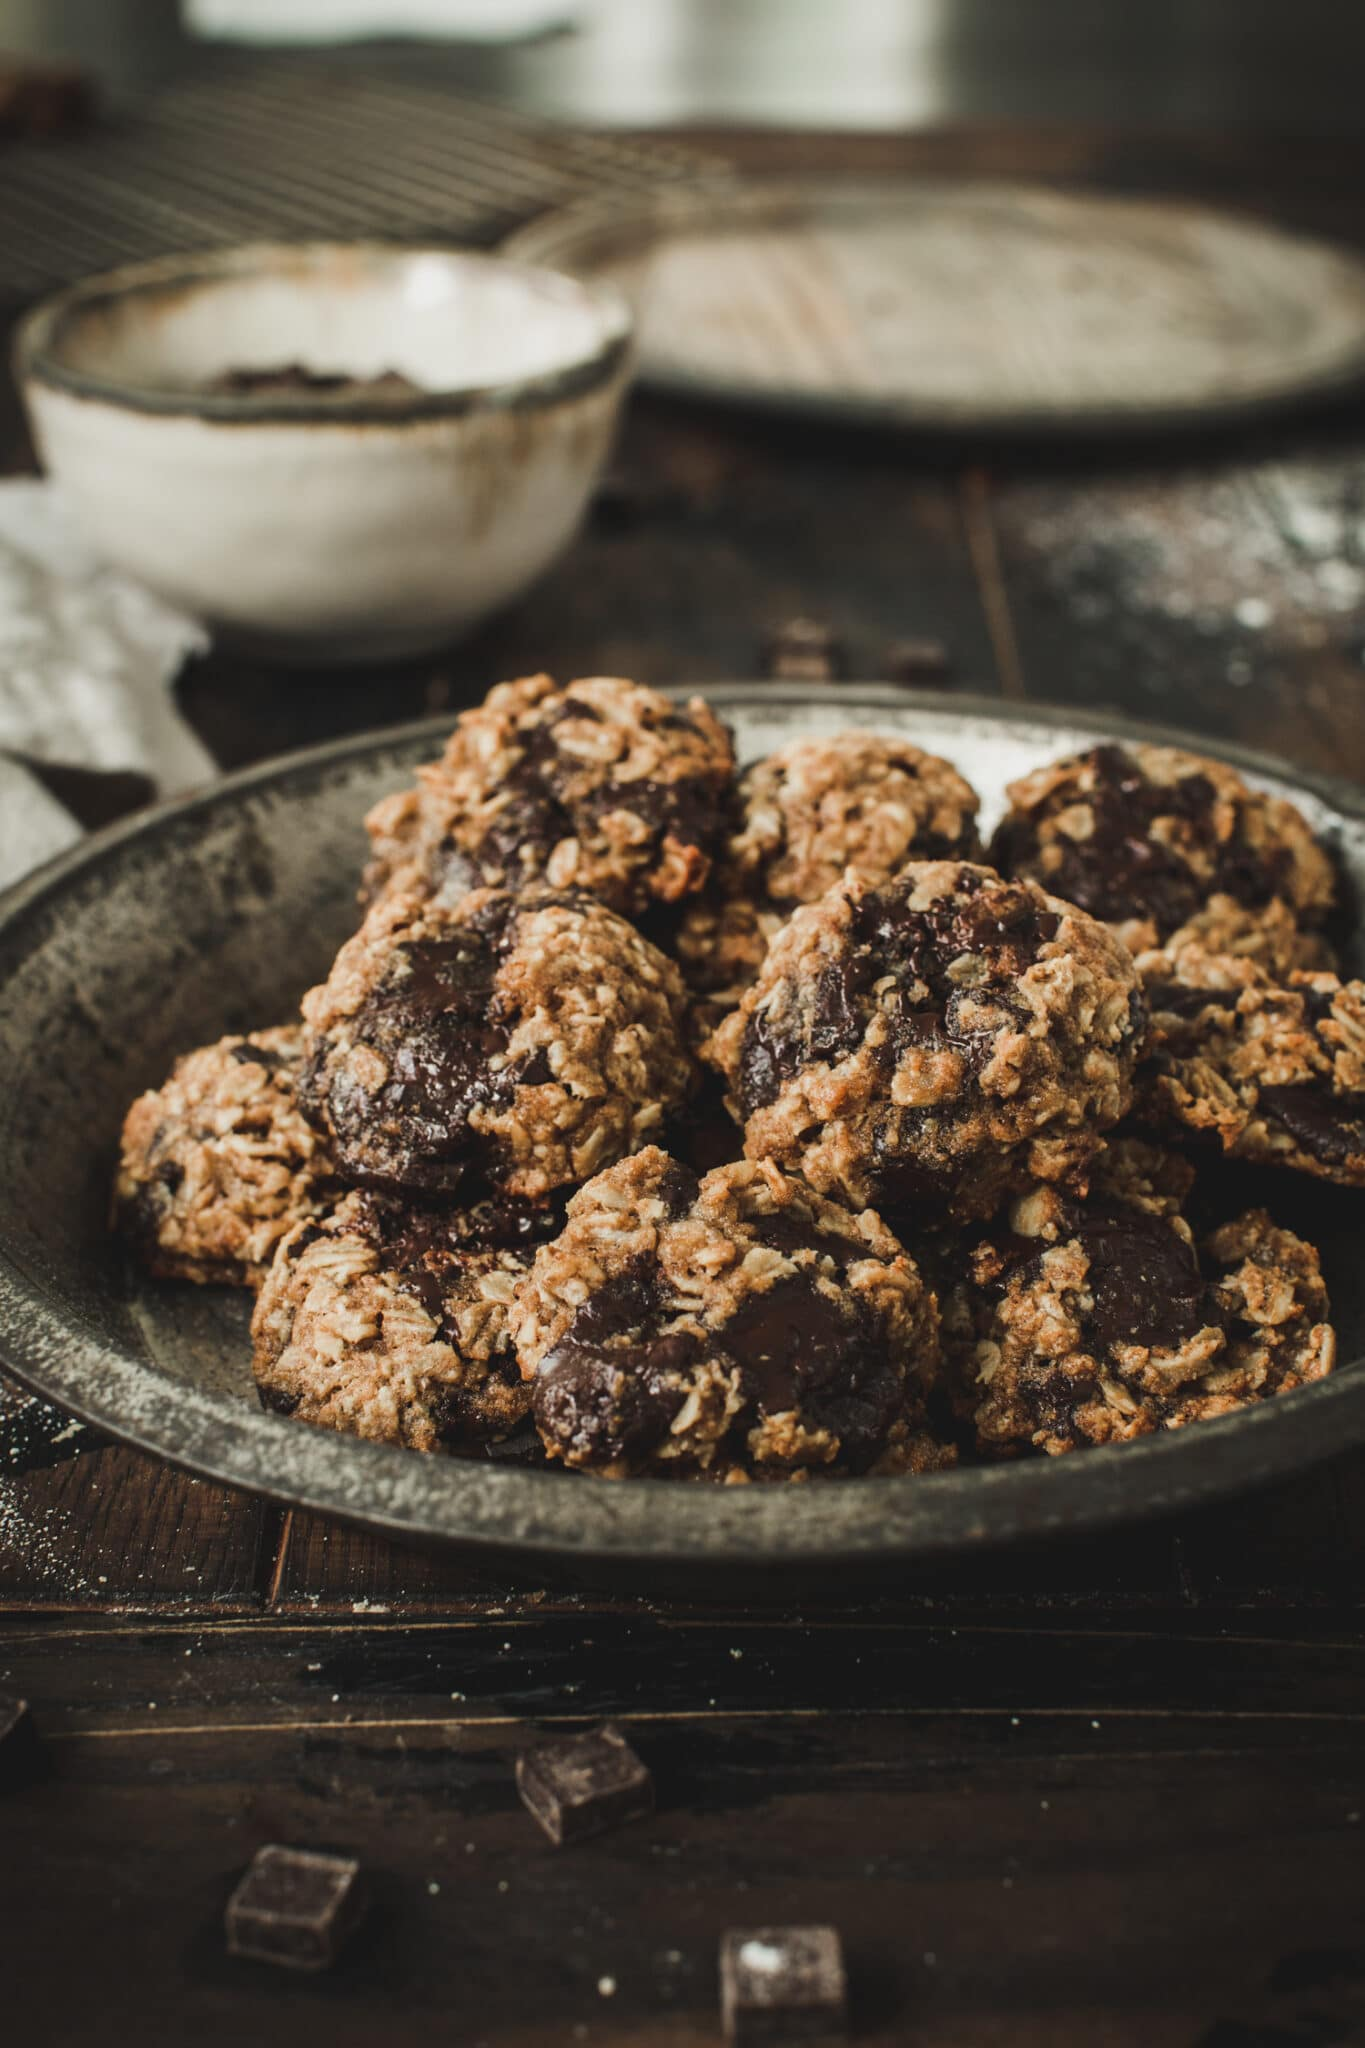 oatmeal cookies in metal pie tin on wooden table